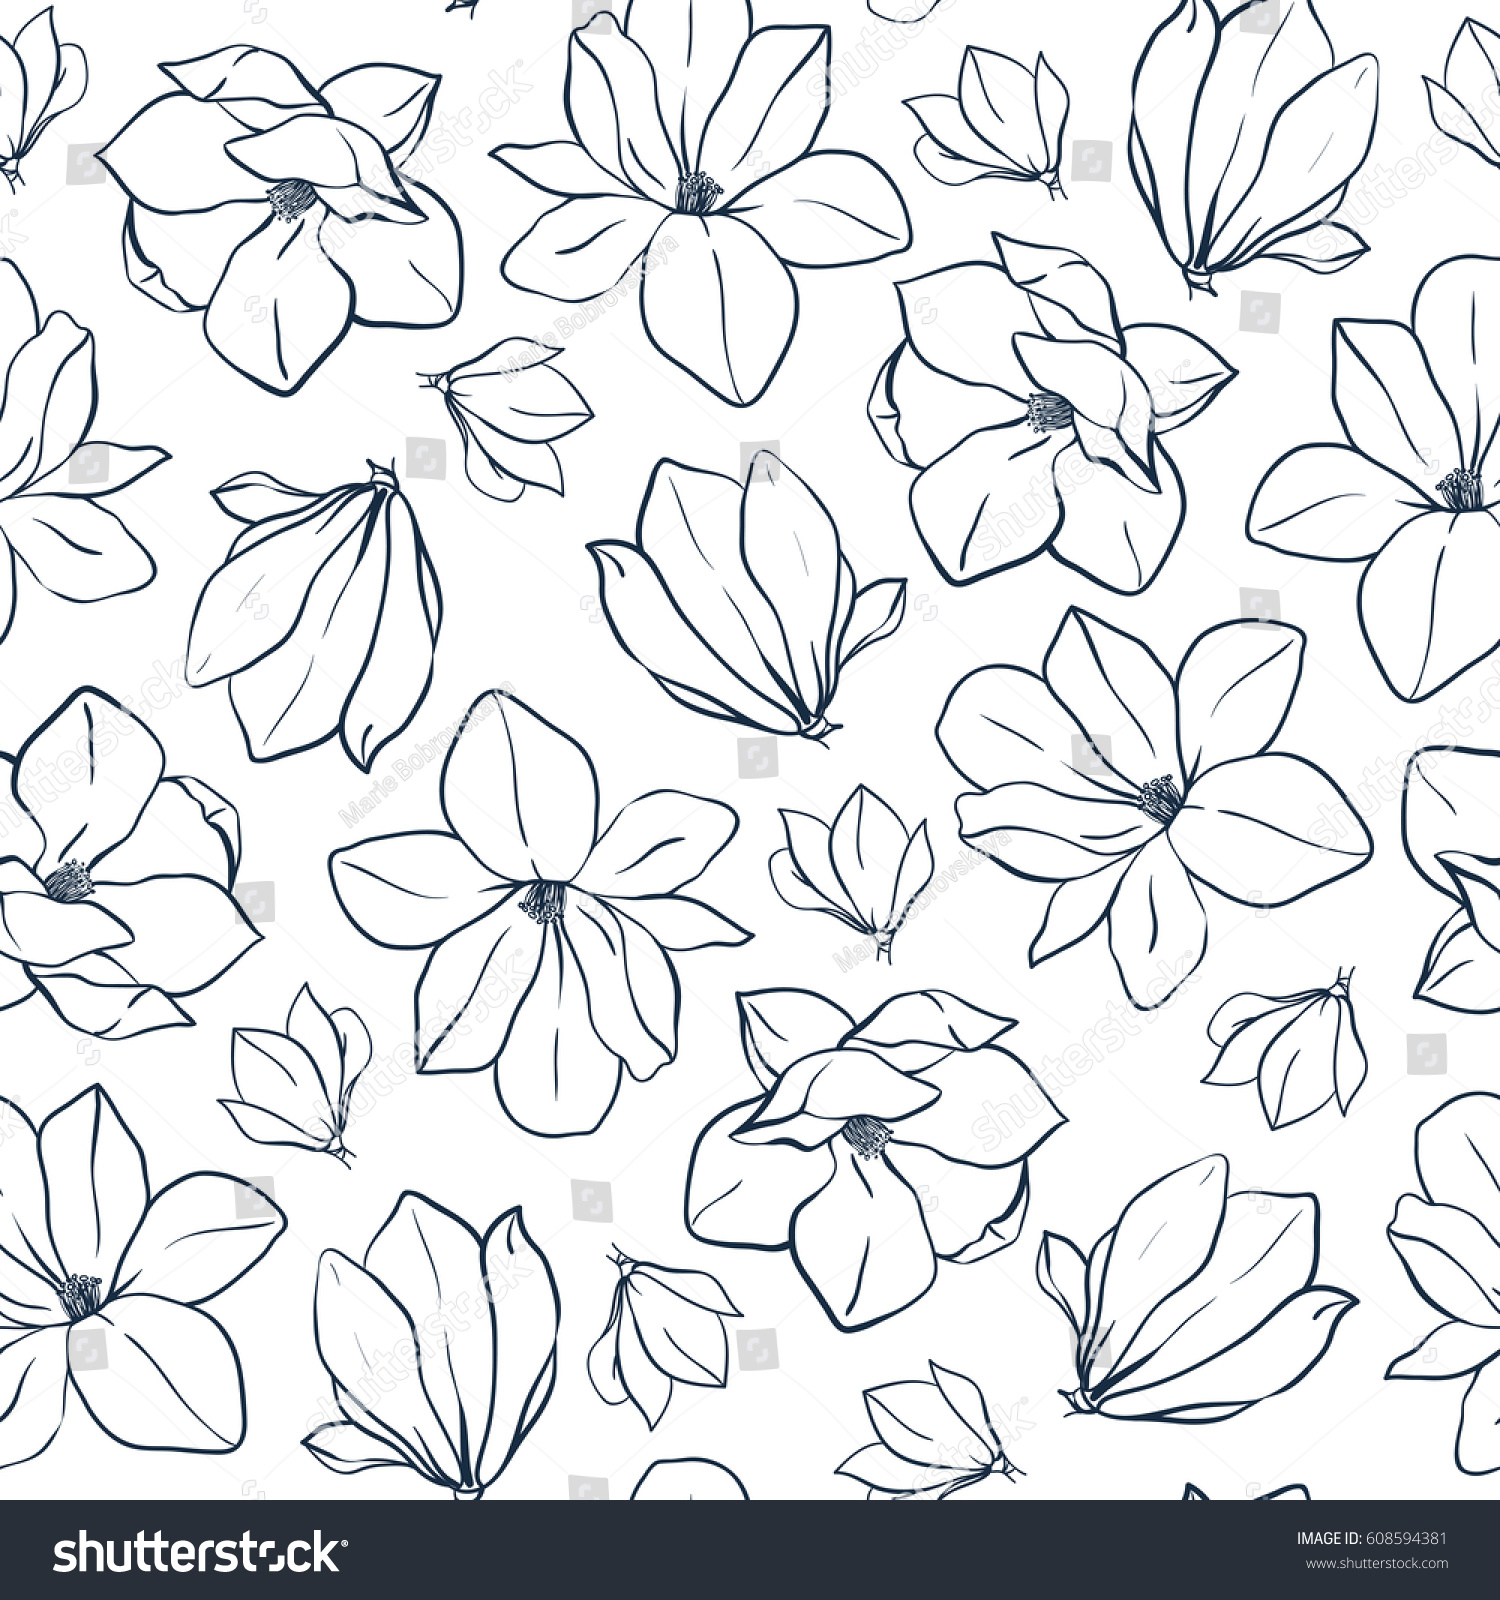 Coloring pages of flower buds - Graphic Magnolia Flowers And Buds Vector Spring Seamless Pattern Coloring Book Page Design